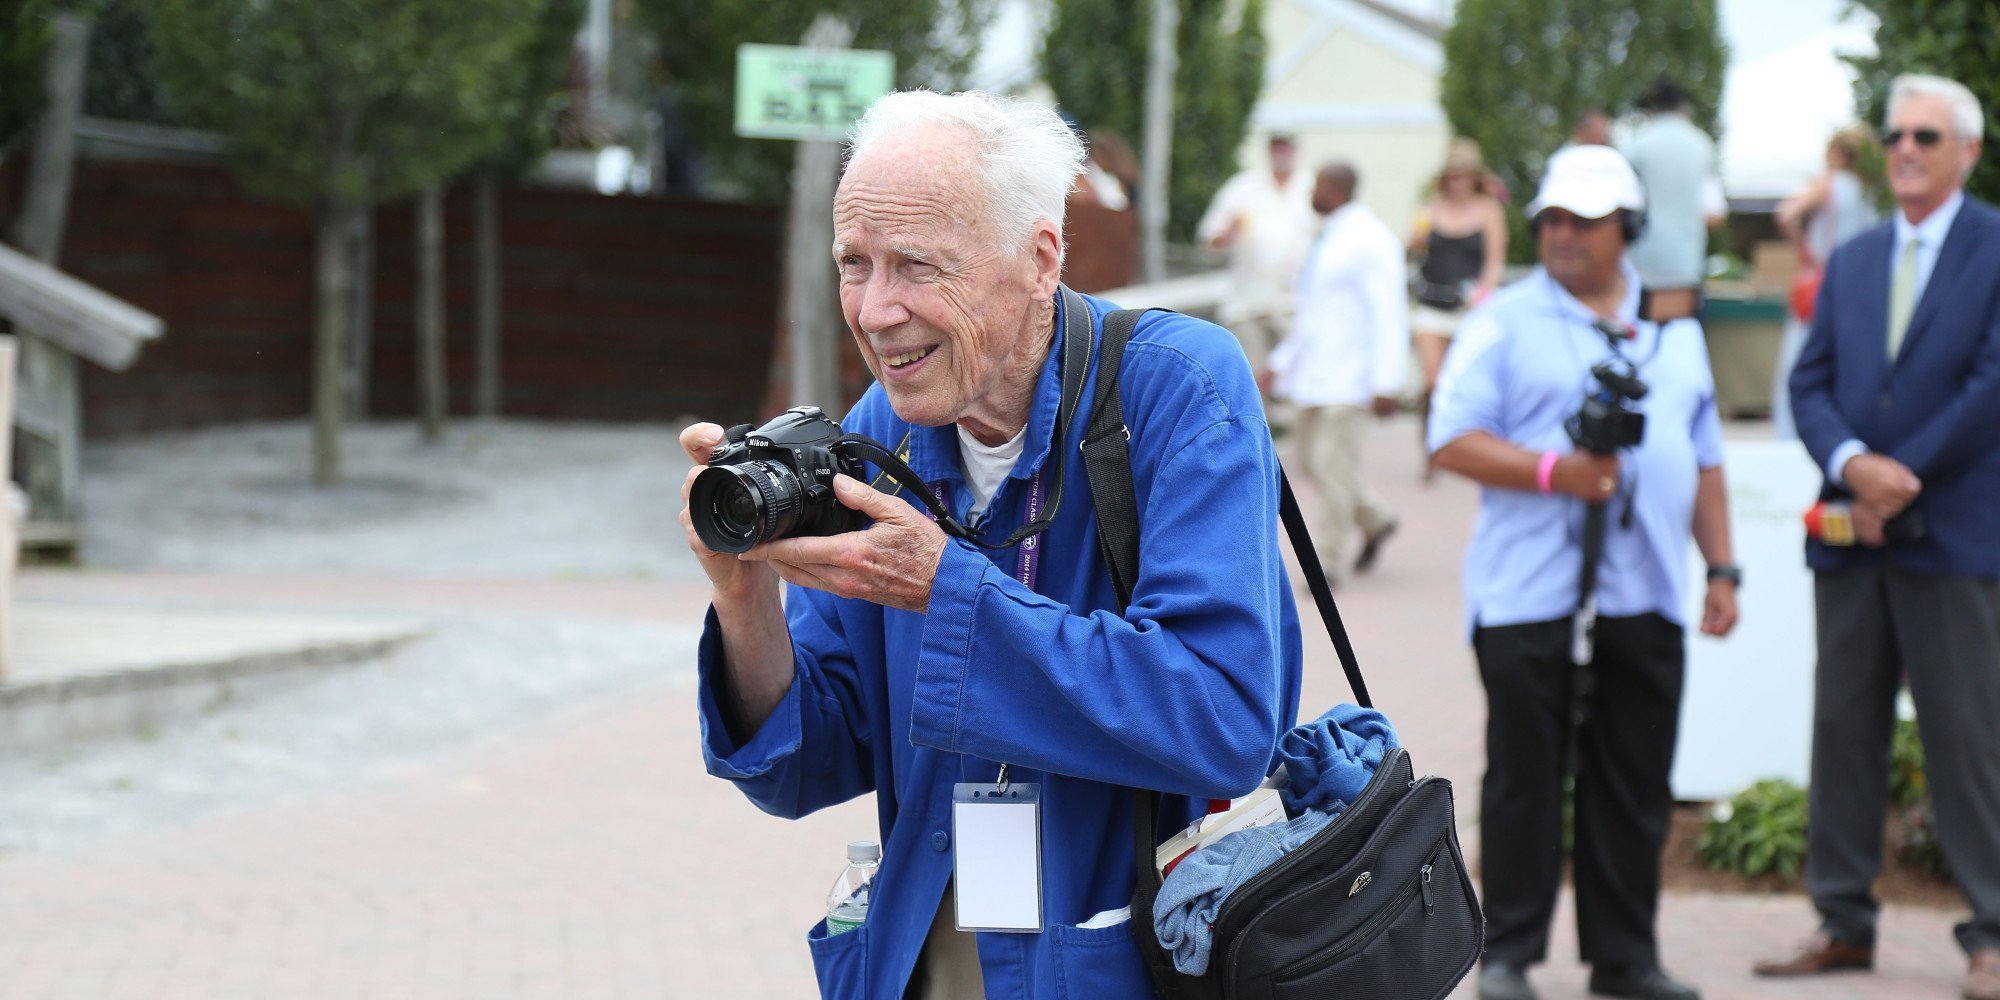 The New York Times' Fashion Photographer Bill Cunningham's Death at Age 87